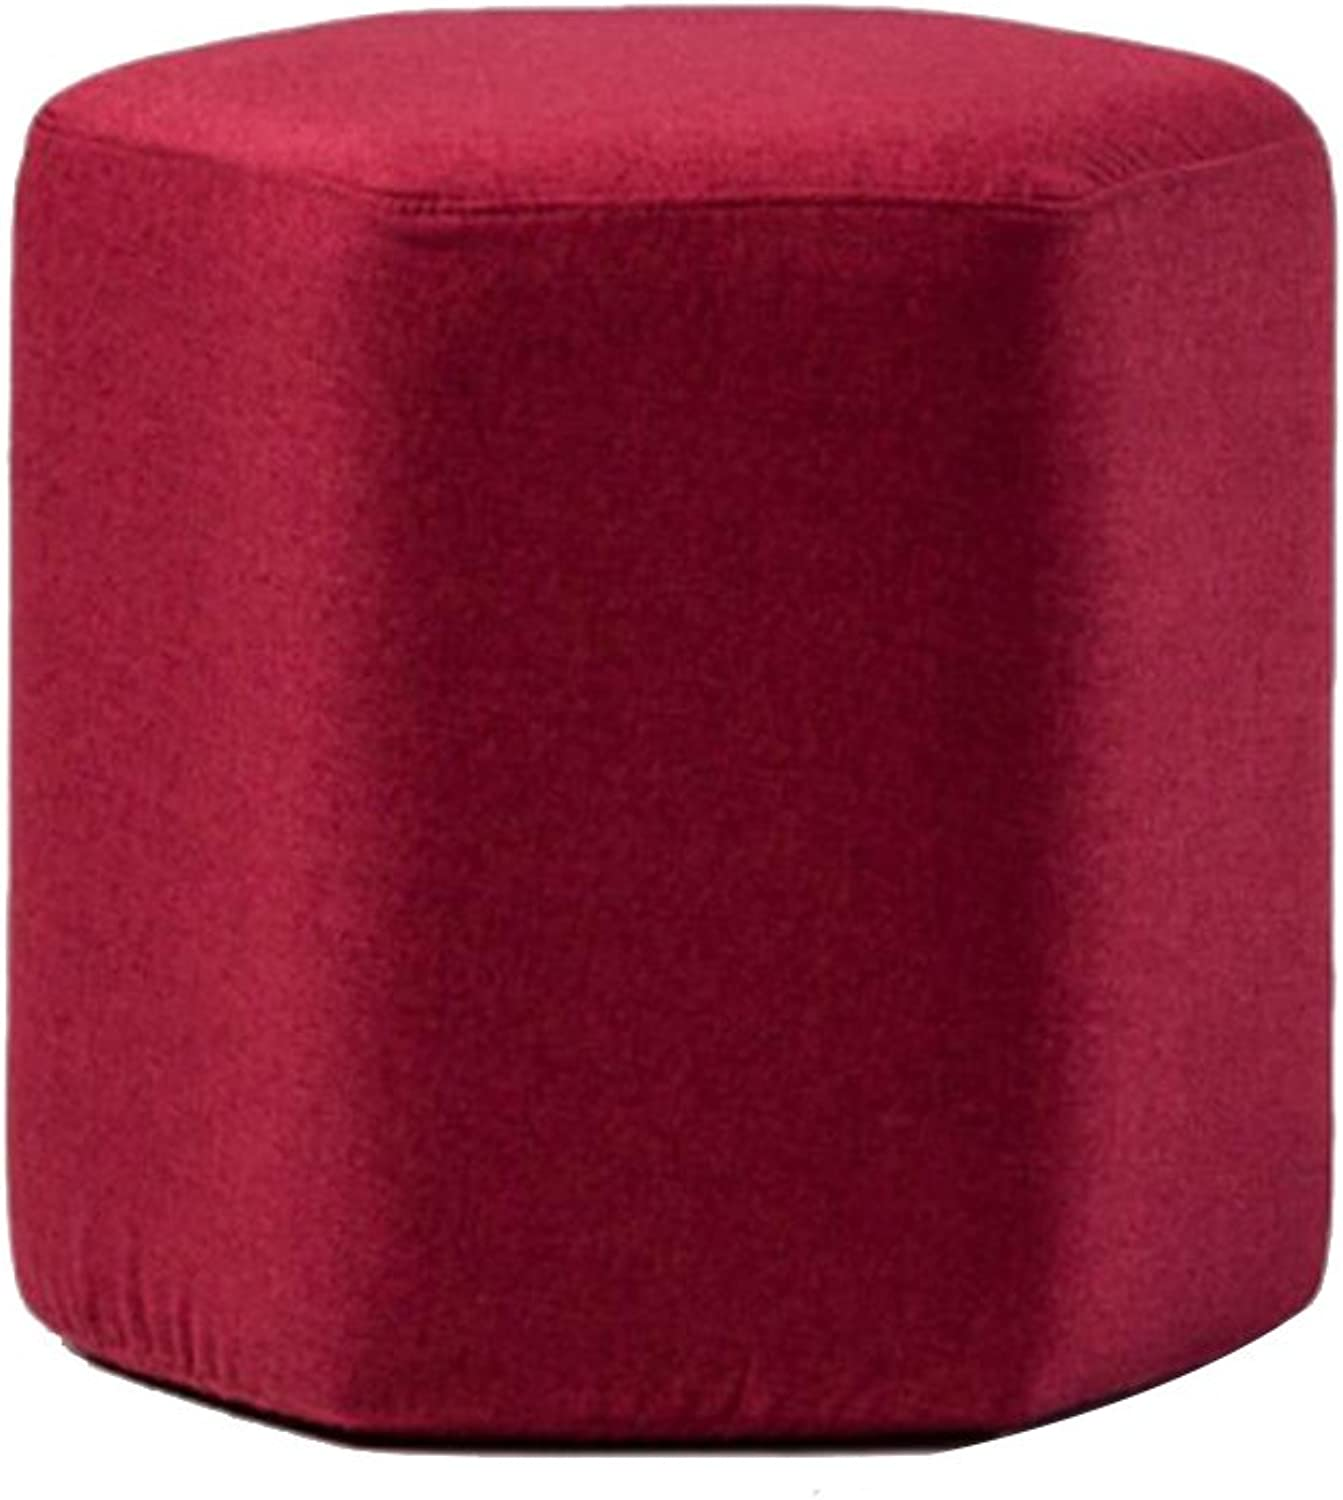 HQCC Change shoes Stool Creative Home Footstool Fabric Solid Wood Stool Coffee Table Stool Removable Washable Sofa Stool Hexagonal Shape Stackable Storage Stool (color   RED)